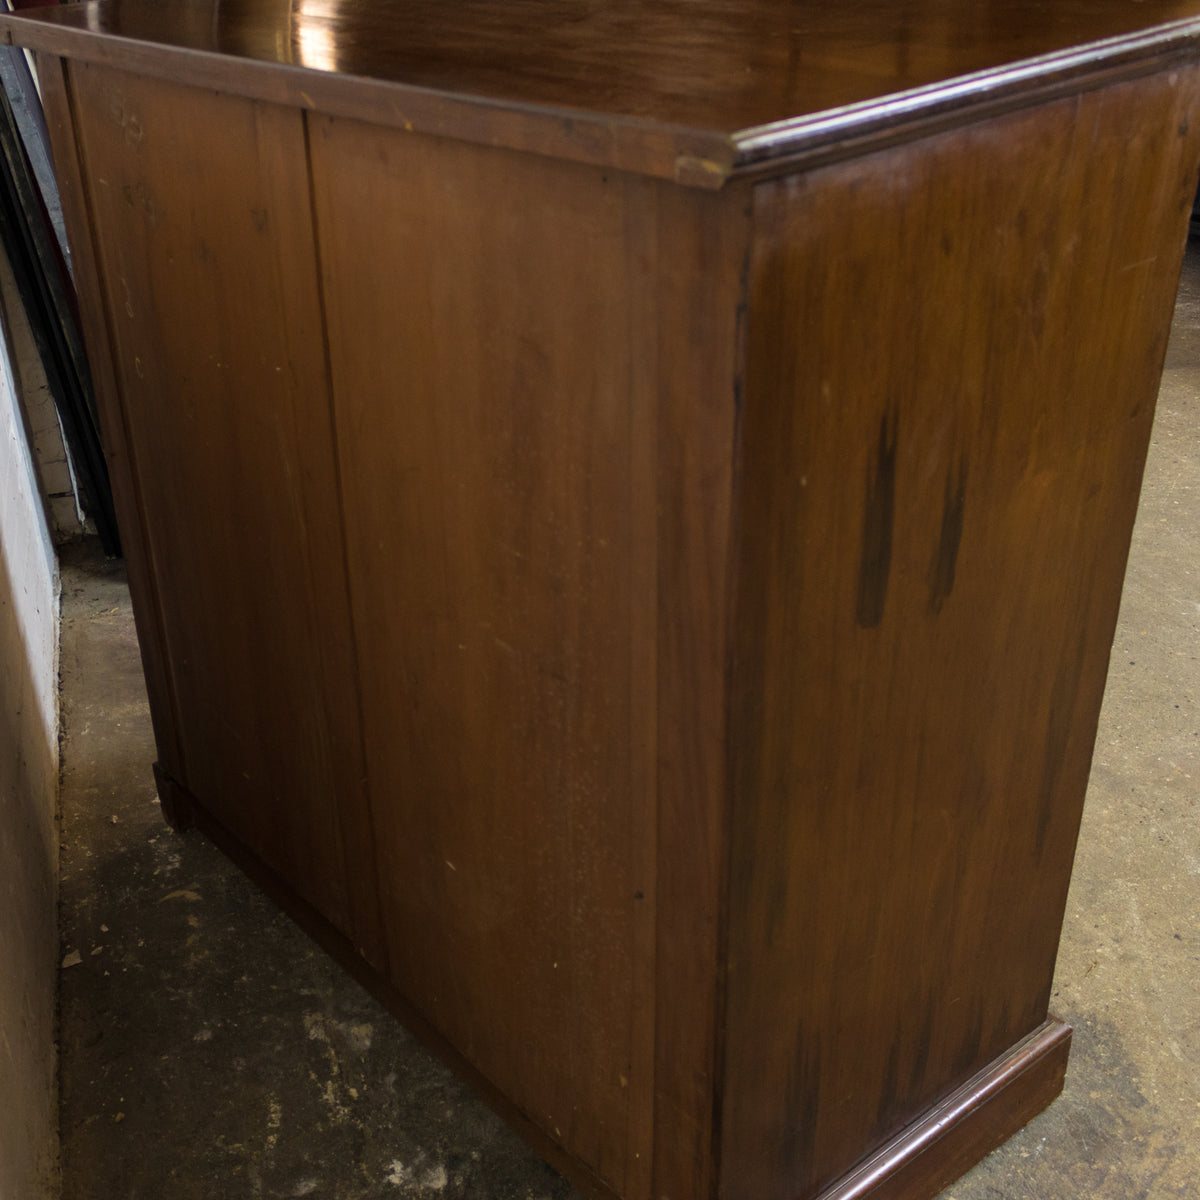 Antique Early Edwardian Maple & Co Mahogany Chest of Drawers | The Architectural Forum